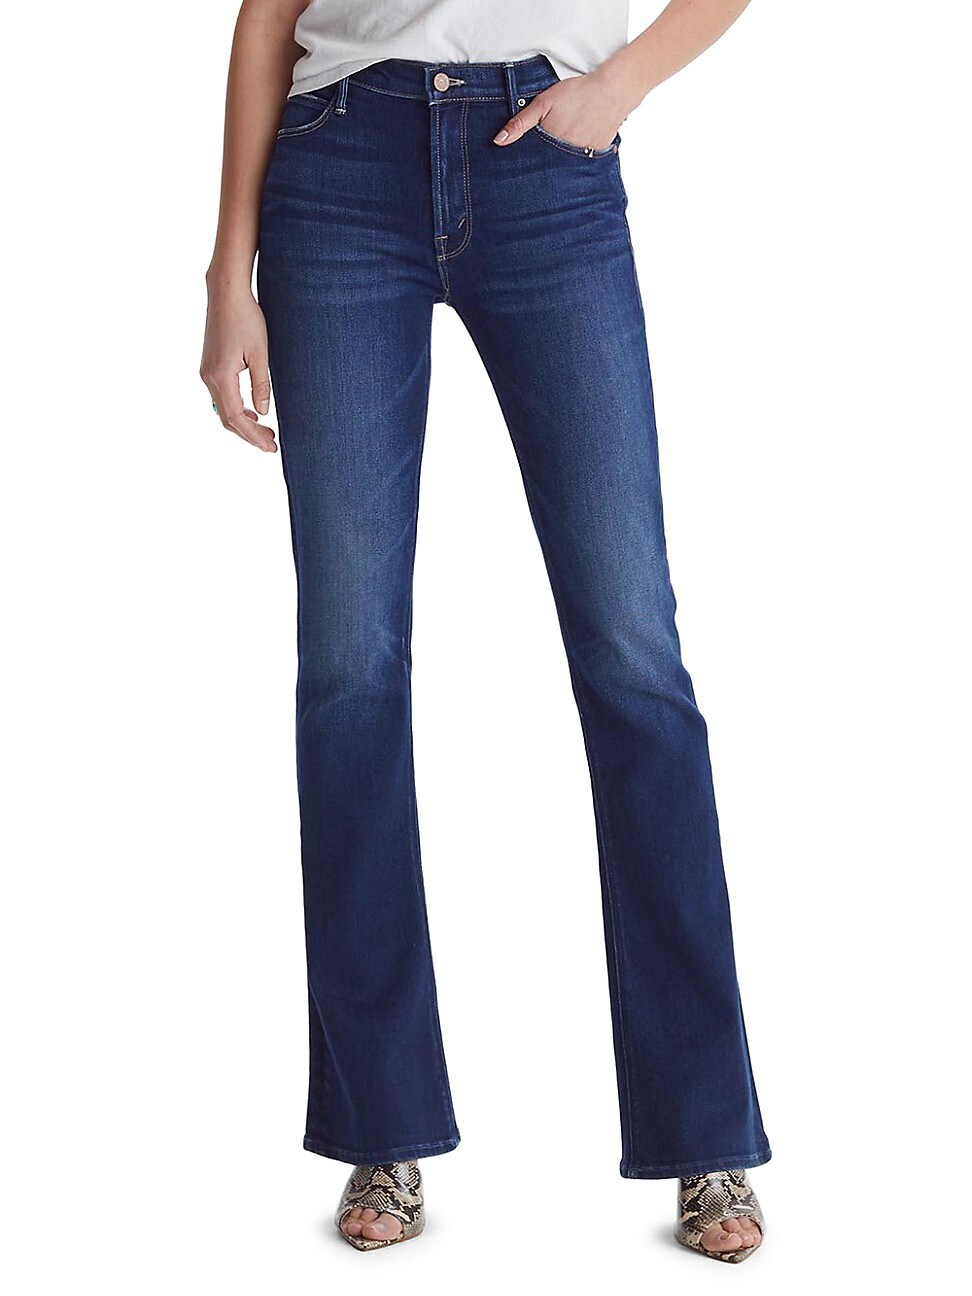 MOTHER WOMEN'S THE RUNAWAY BOOTCUT JEANS